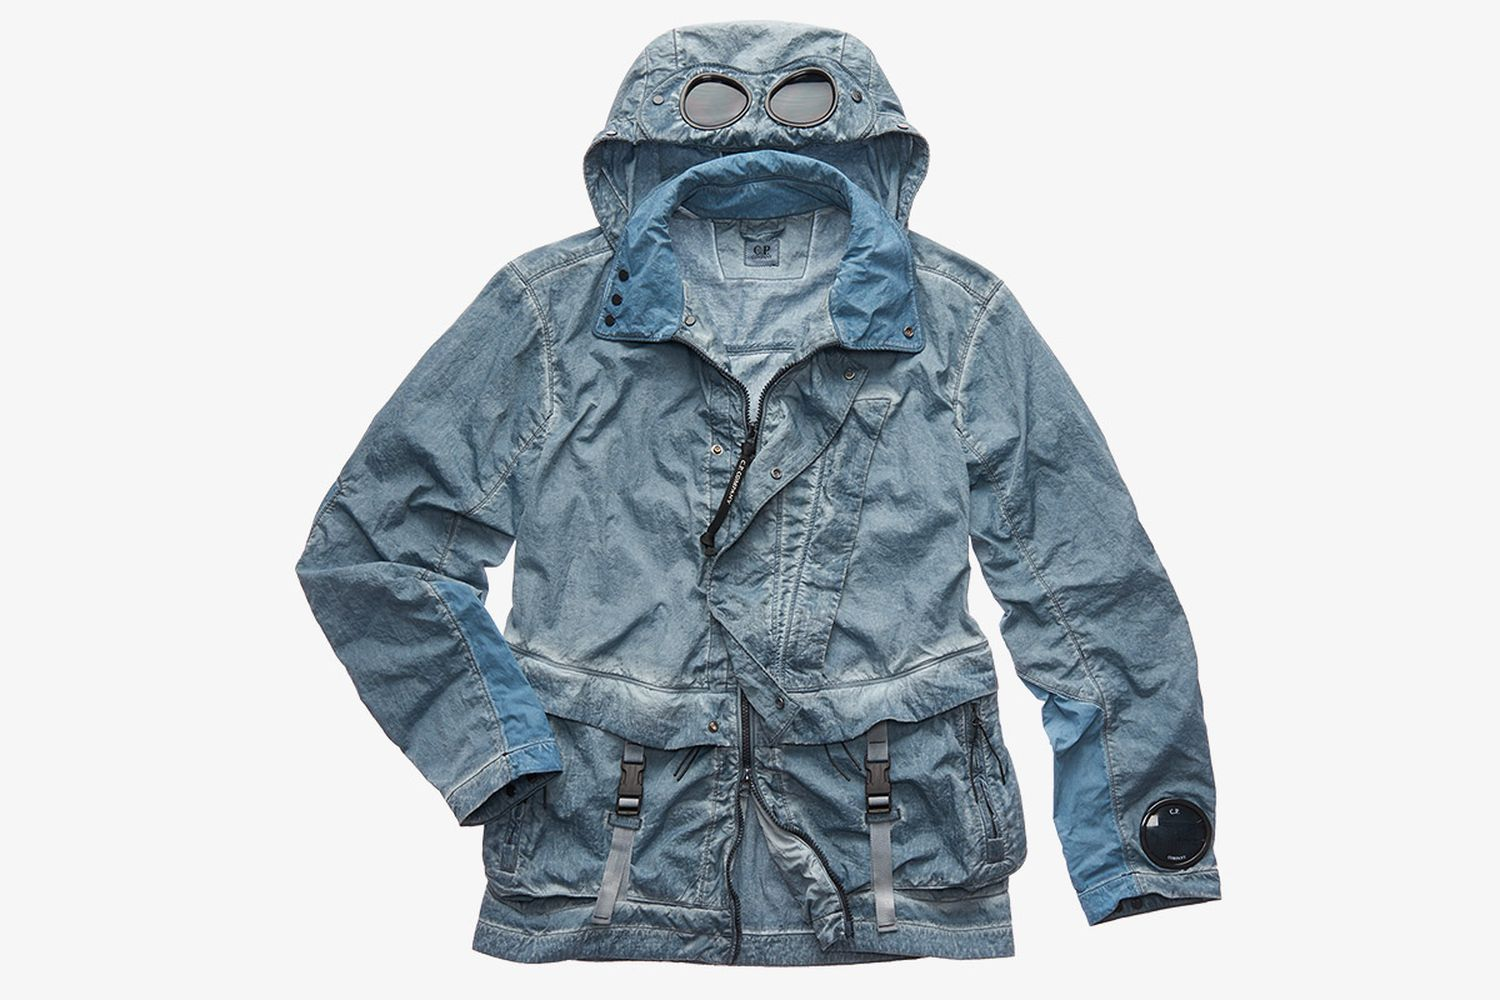 M.T.t.N. Goggle Jacket